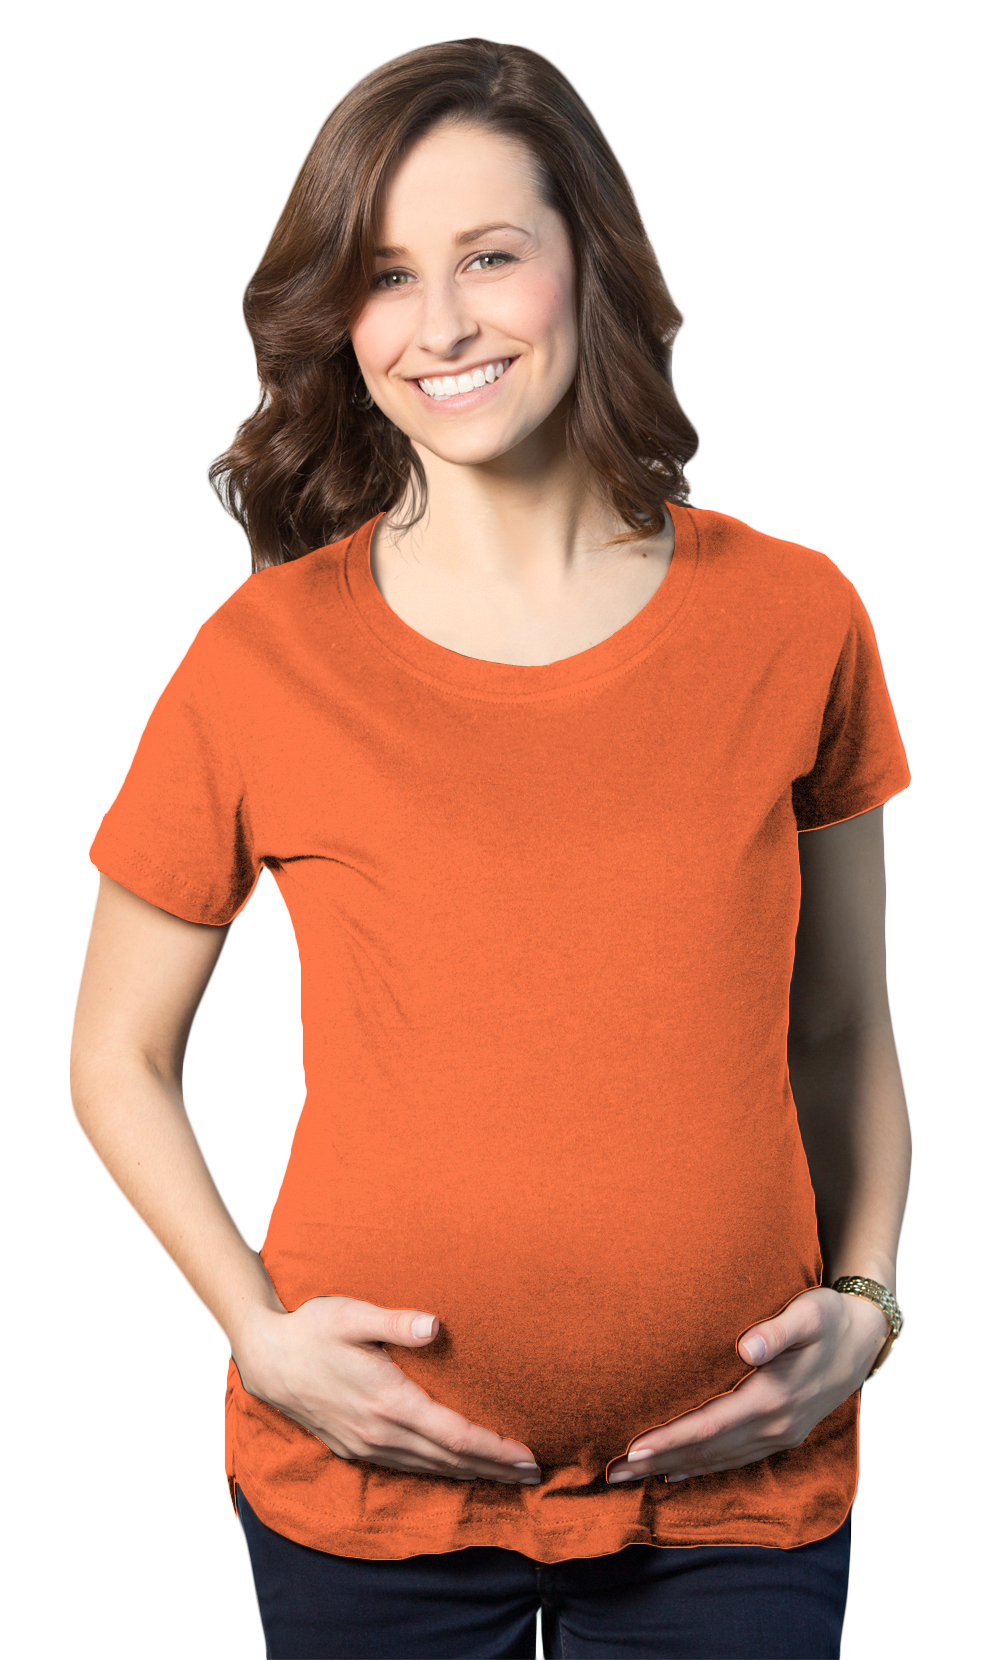 Halloween Maternity Shirts. Clothing. Maternity. Maternity Tops & T-Shirts. Maternity Graphic Tees. Halloween Maternity Shirts. Showing 48 of 67 results that match your query. Product - Maternity Due In August Funny T shirts Pregnant Shirts Announce Pregnancy Month Shirt. Product Image. Price $ .